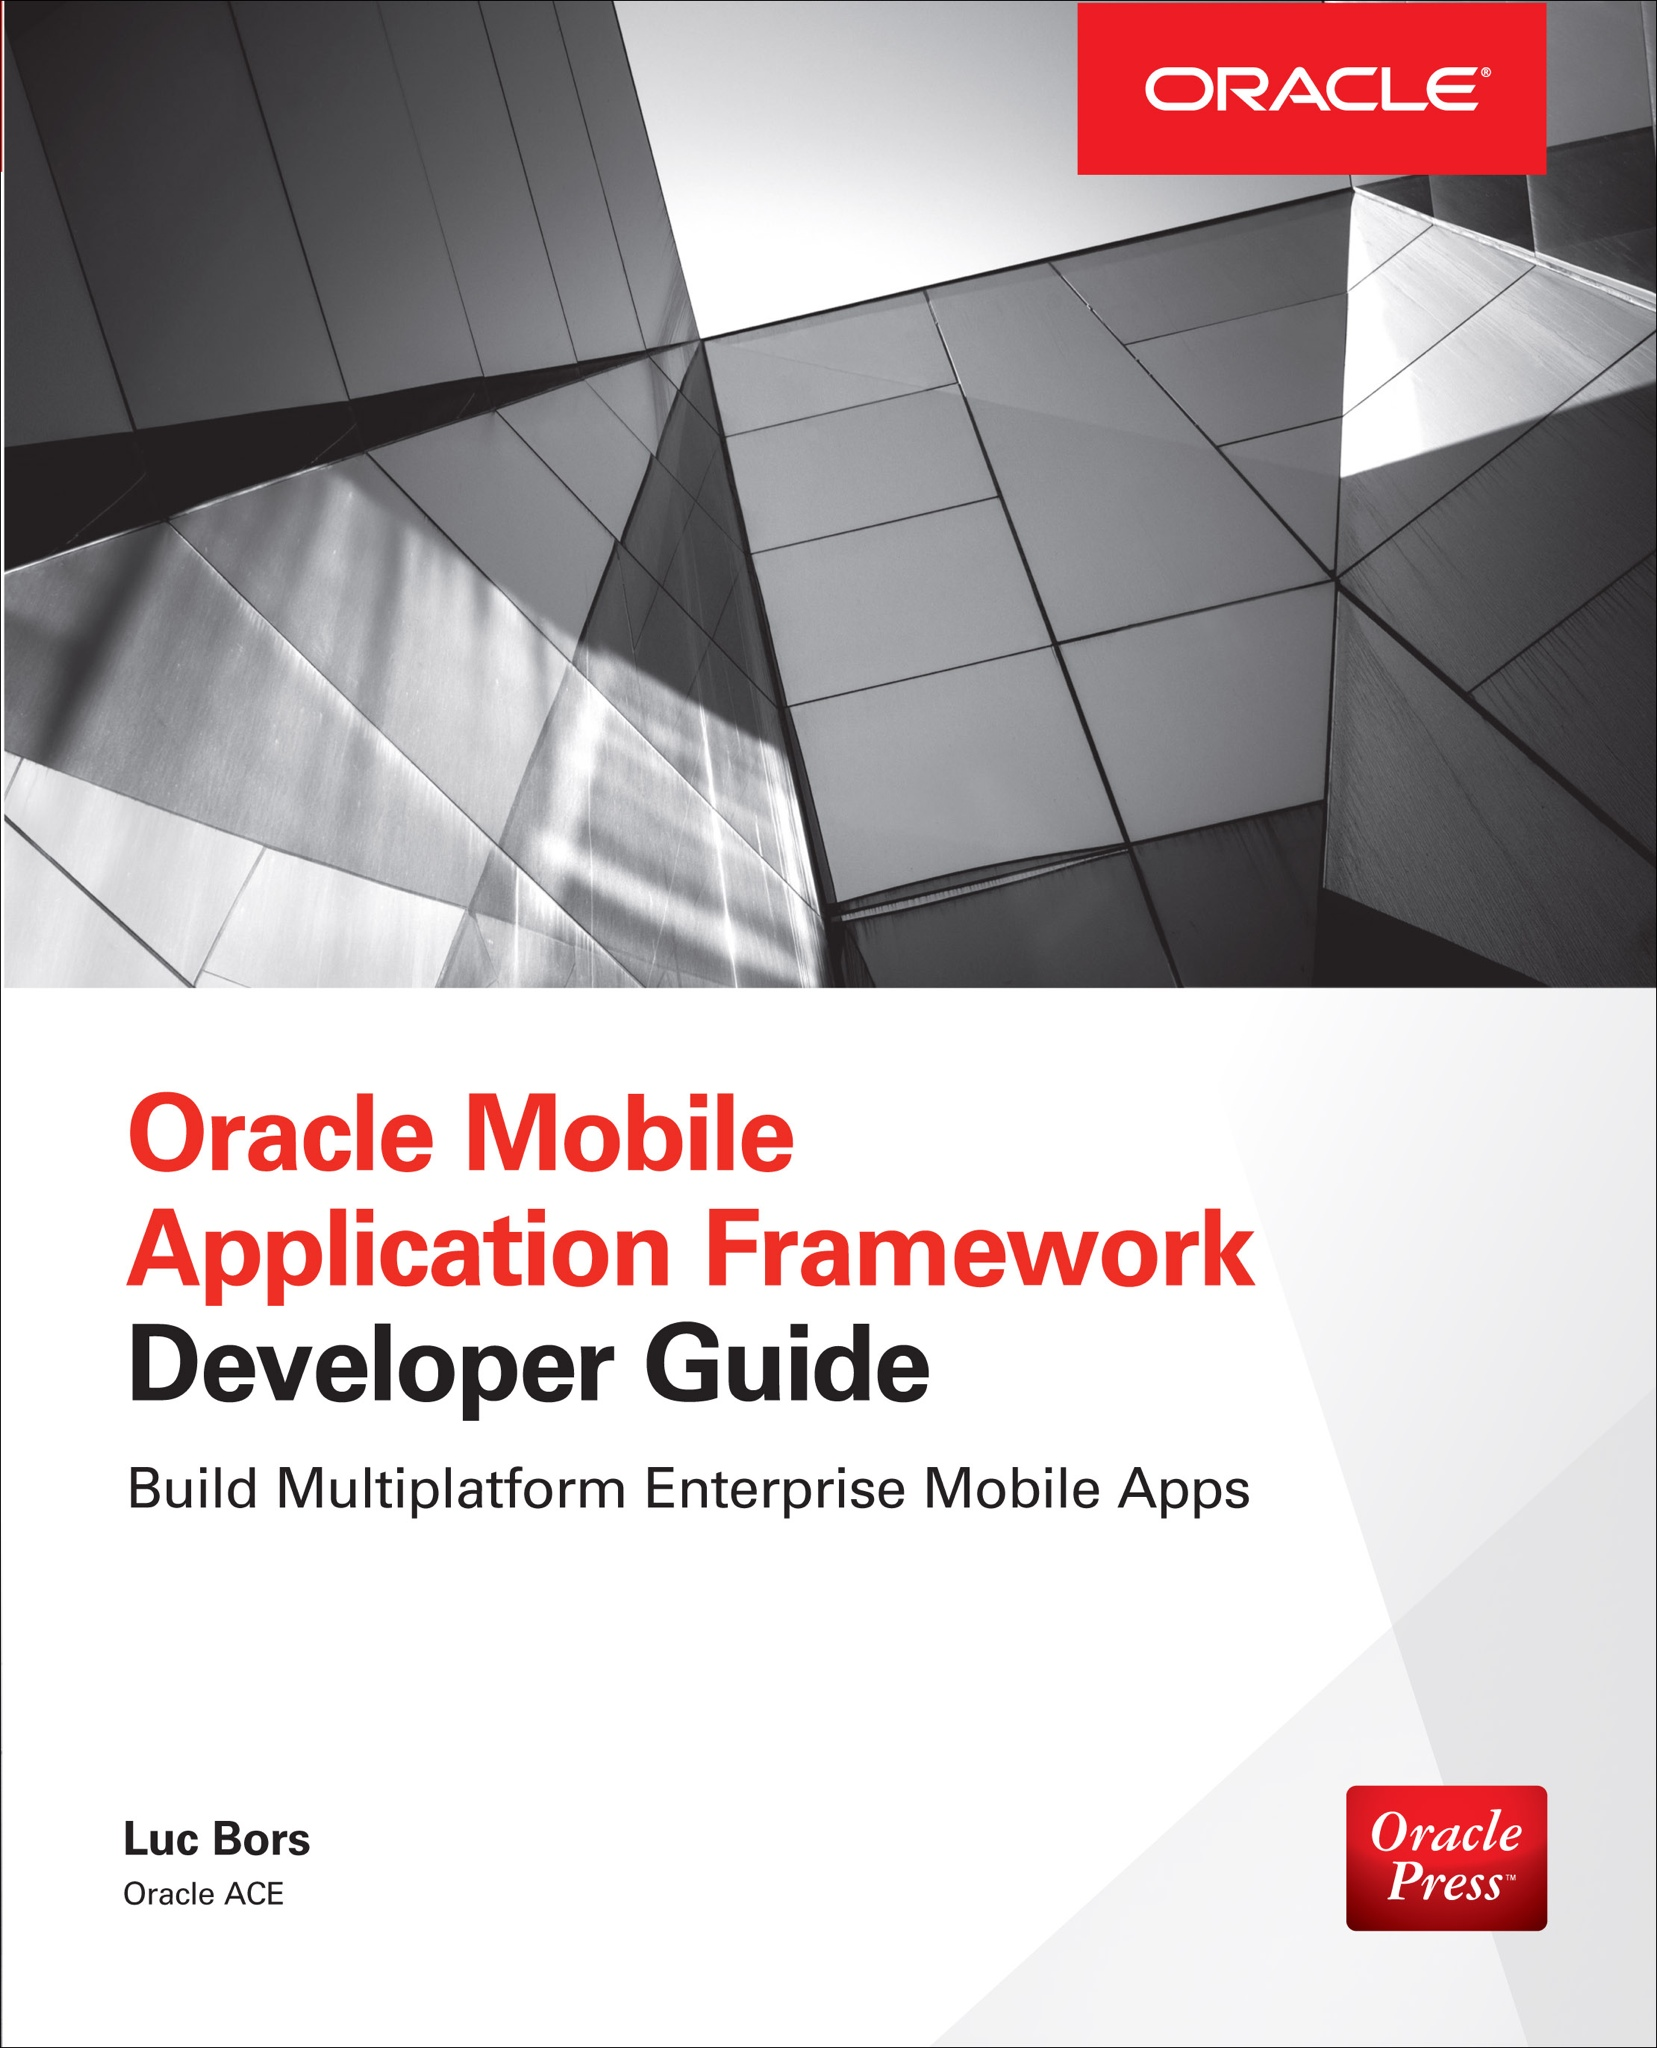 Book : Oracle Mobile Application Framework Developer Guide